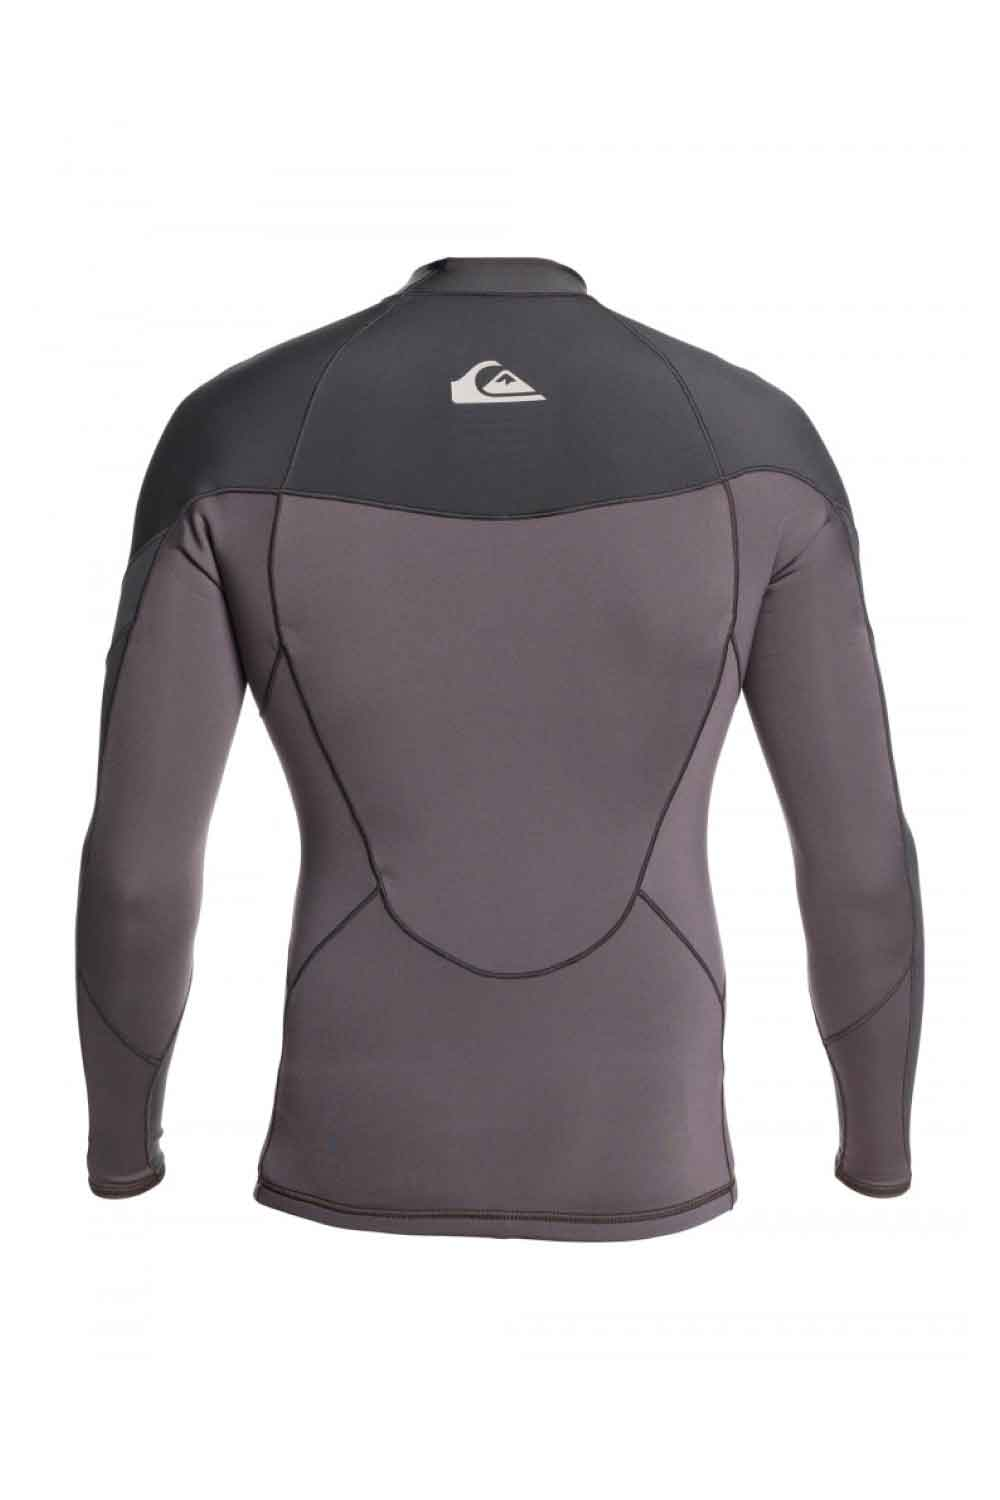 Quiksilver Mens Syncro 1mm Long Sleeve Neoprene Surf Jacket